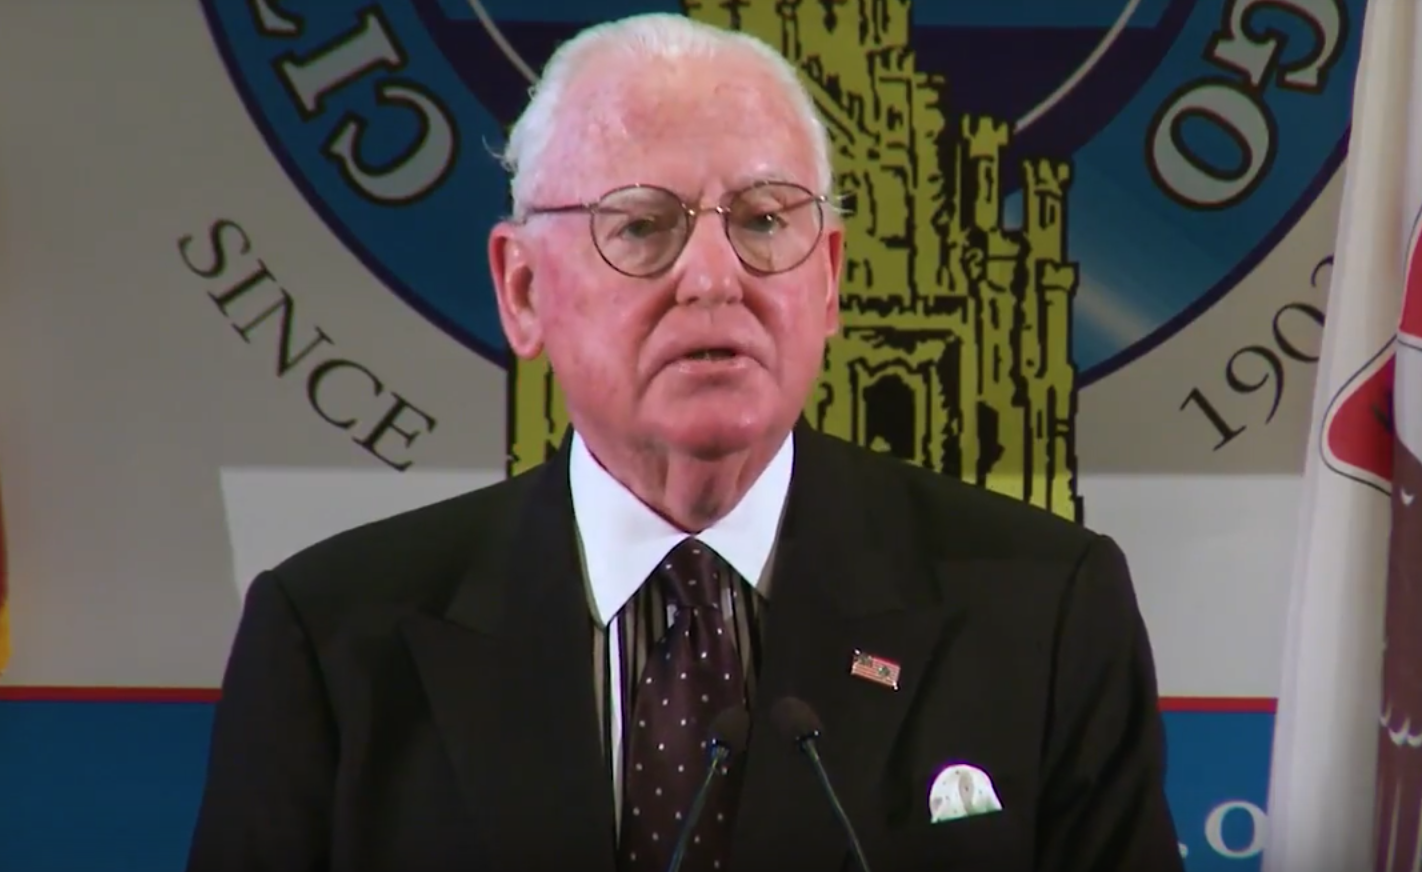 Chicago Alderman Ed Burke (D-14th) was honored earlier this year by the Chicago City Club